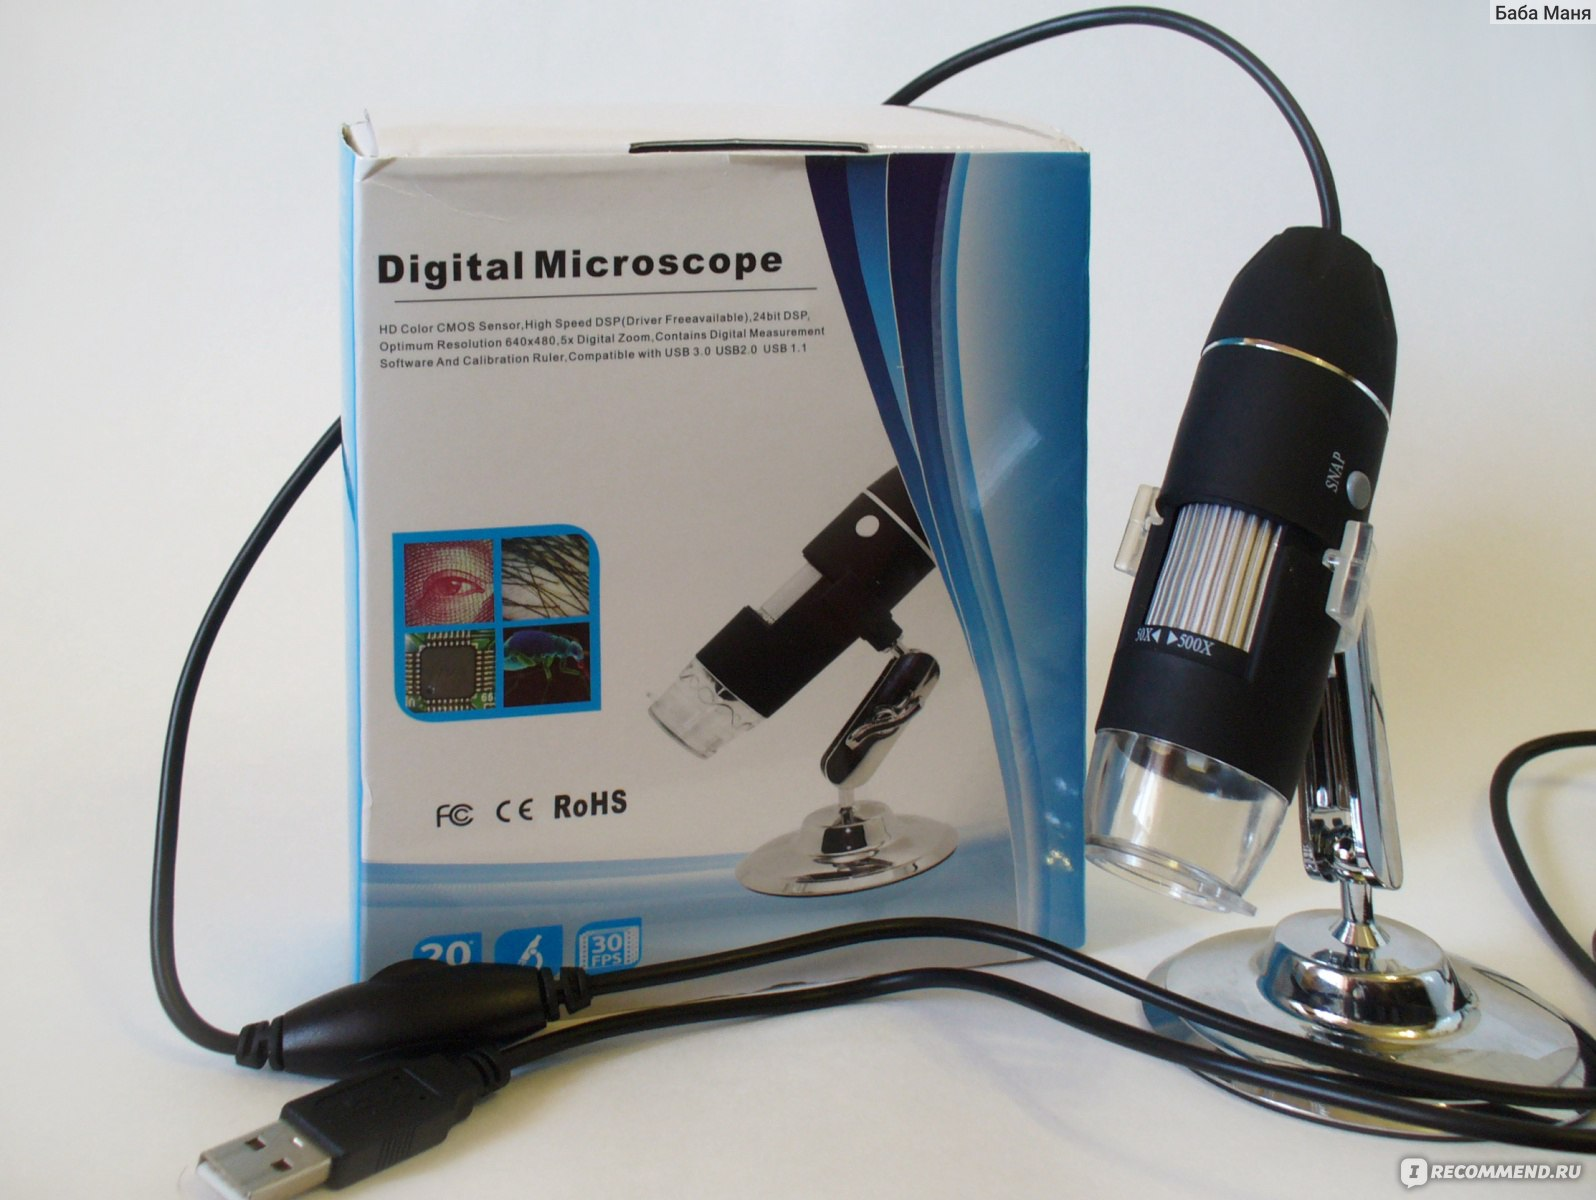 Usb digital microscope драйвер: digital microscope usb mp dicas